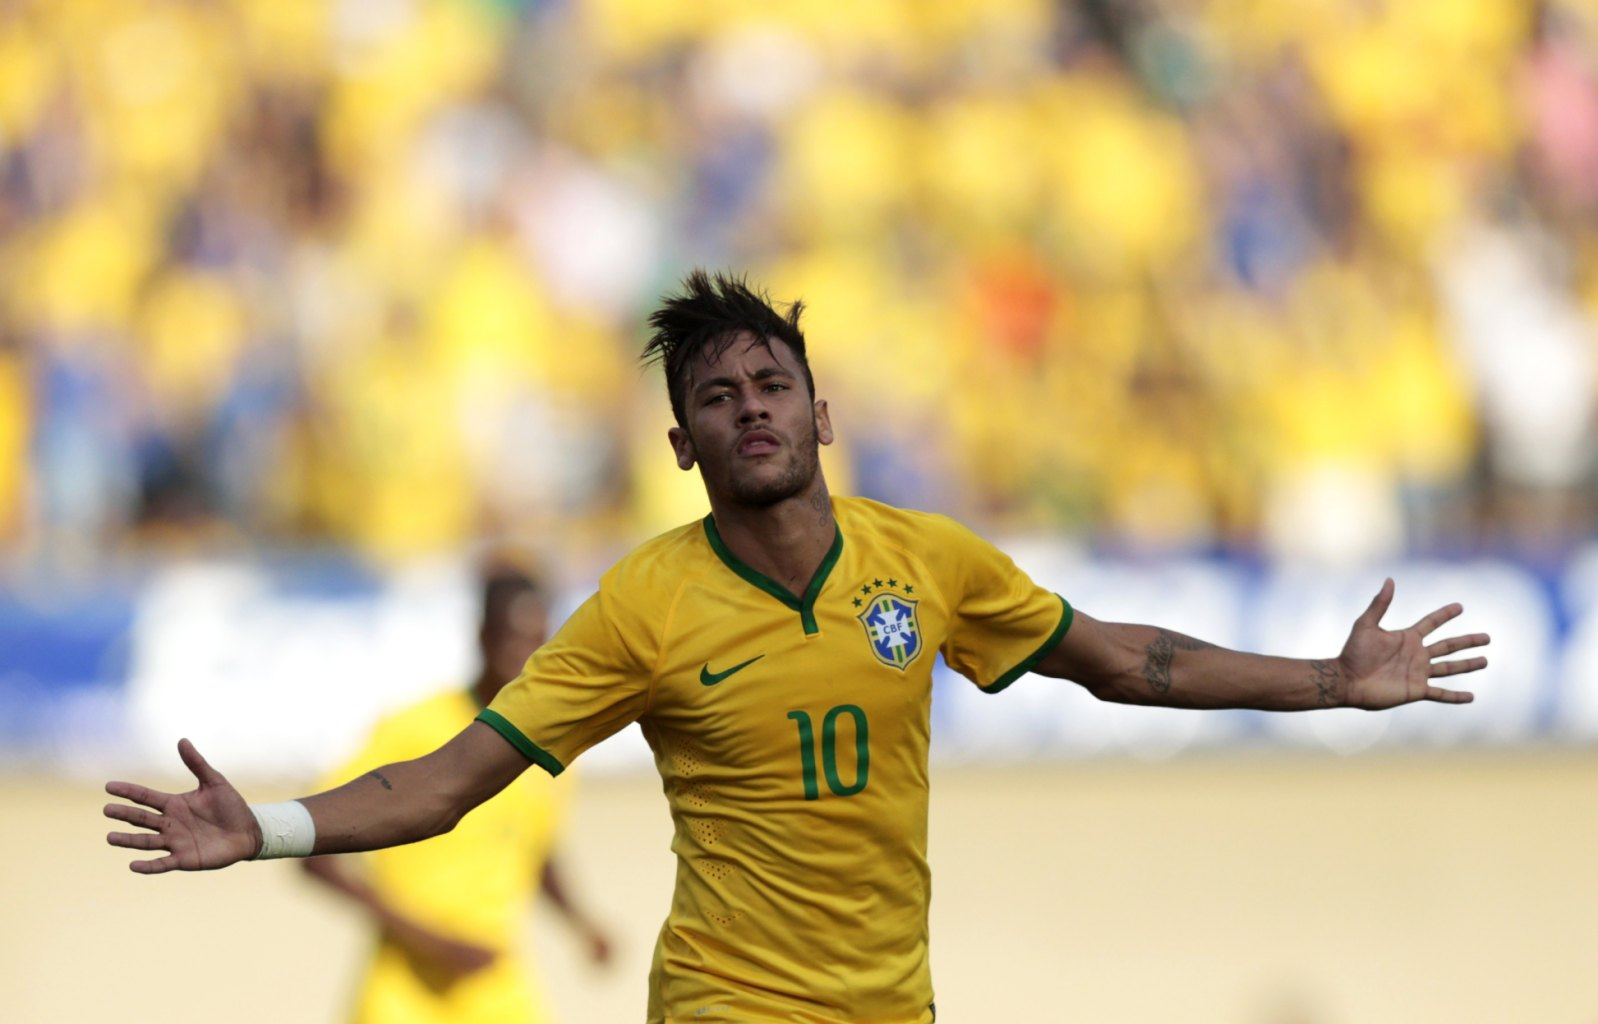 Neymar scores opening goal for Brazil in friendly vs Panama in 2014